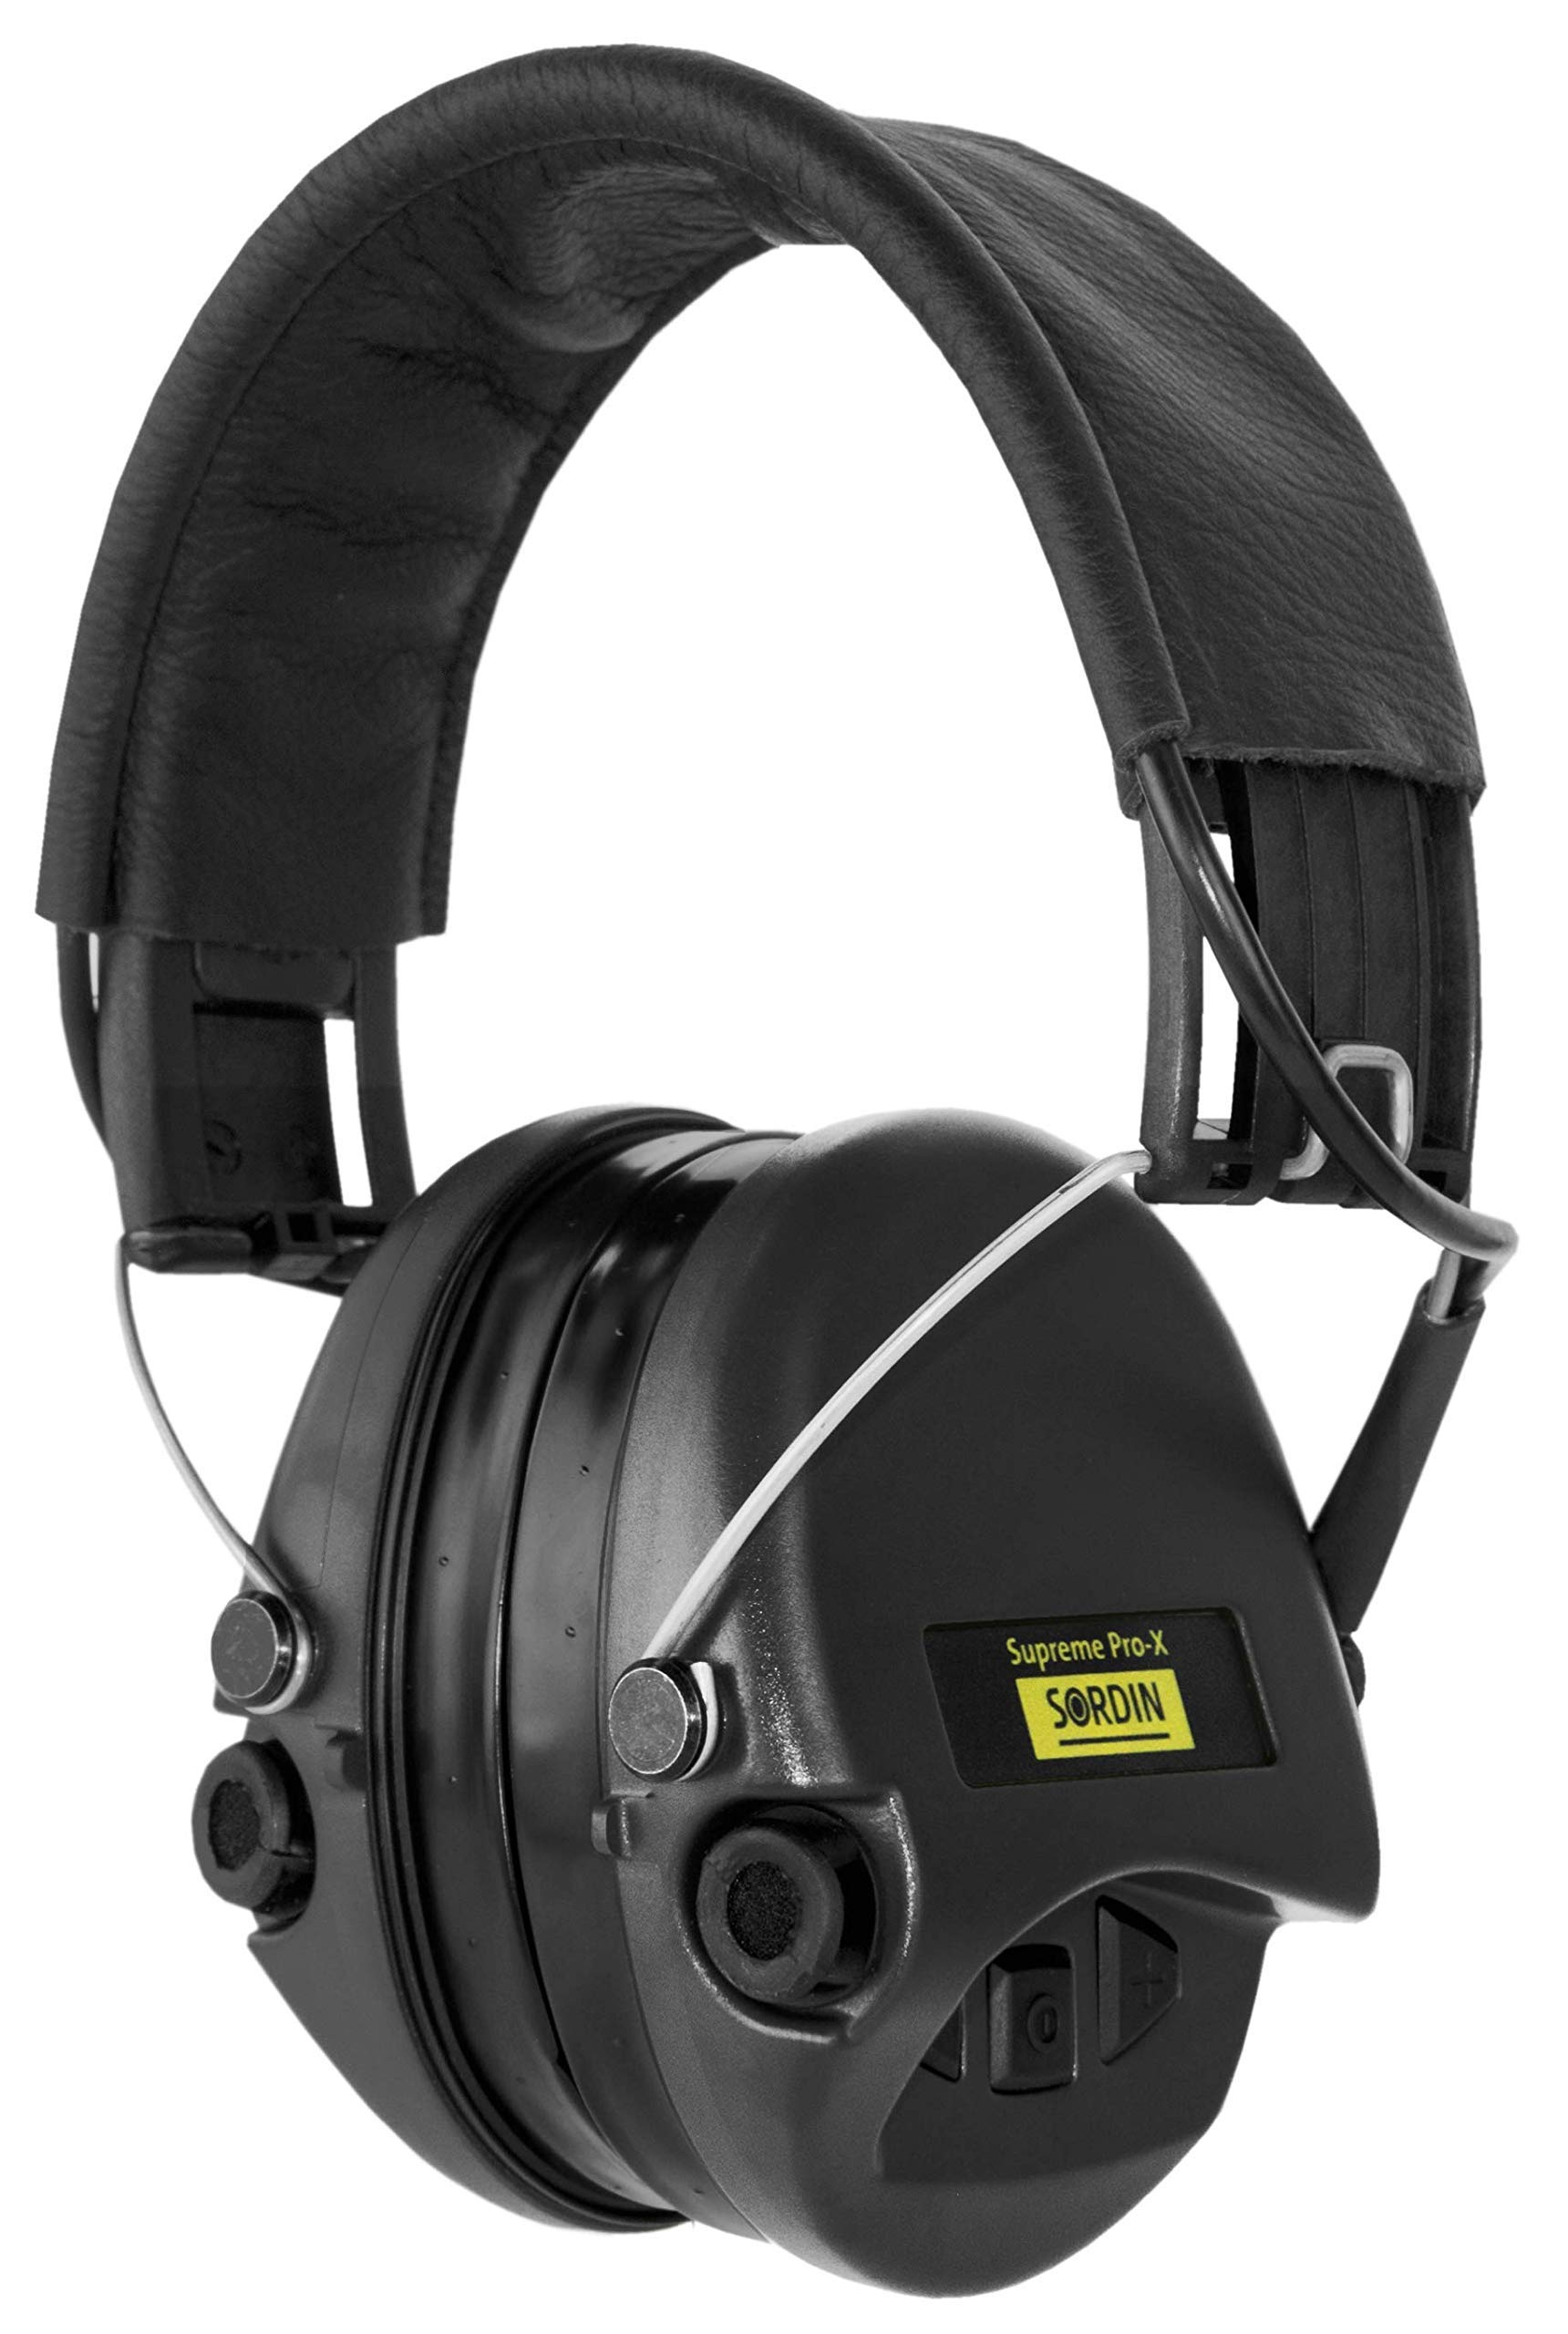 Sordin Supreme PRO X - Active Hearing Protection Noise Reduction Safety Ear Muffs with Gel Seals - Black Leather Headband and Cups by Sordin